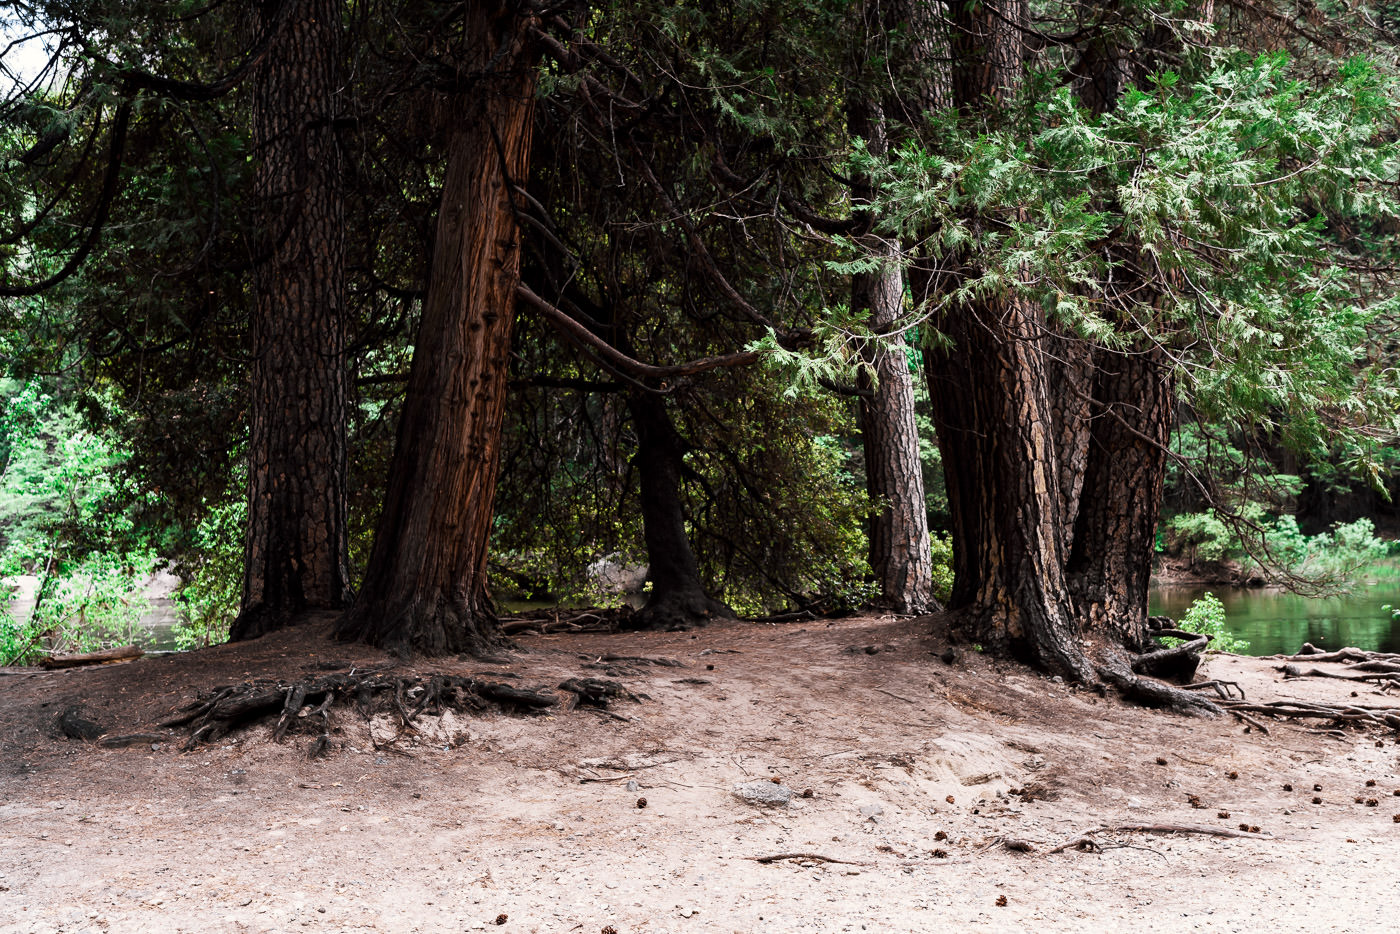 This Circle of pine trees along the Merced River make a natural alter for your wedding ceremony. It is located at The Cascades picnic area in Yosemite National Park.